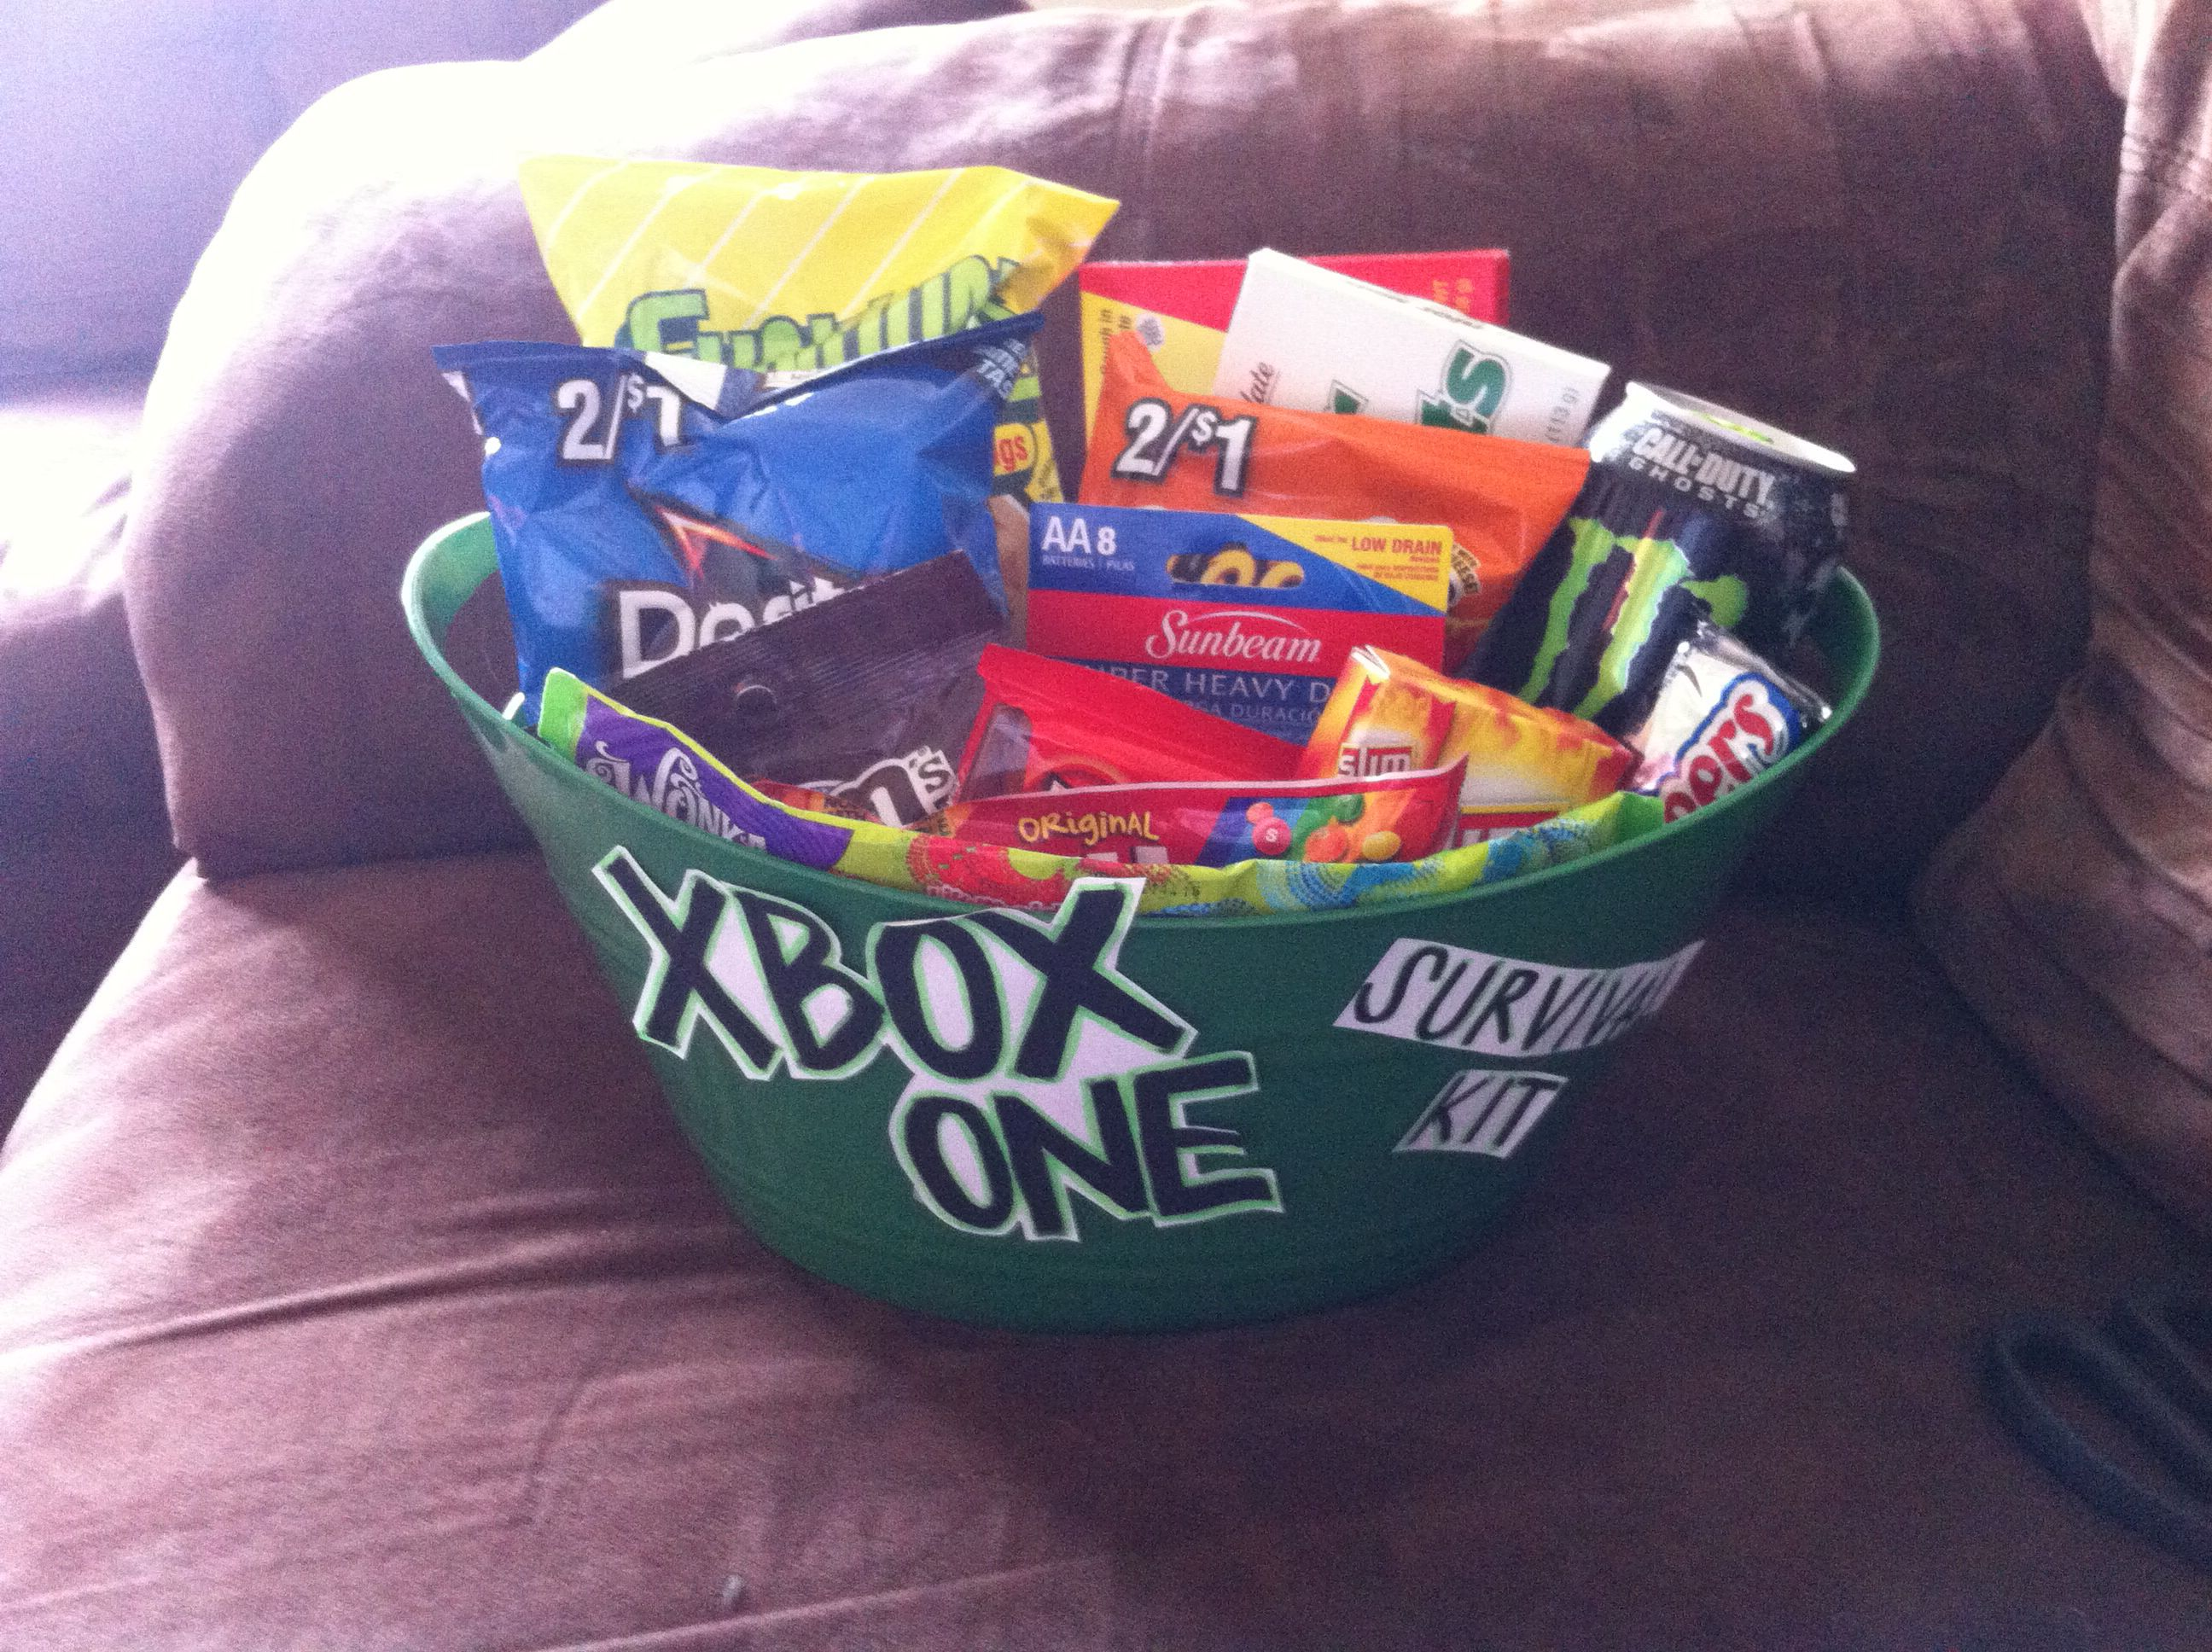 Xbox one survival kit for my brother christmas gifts